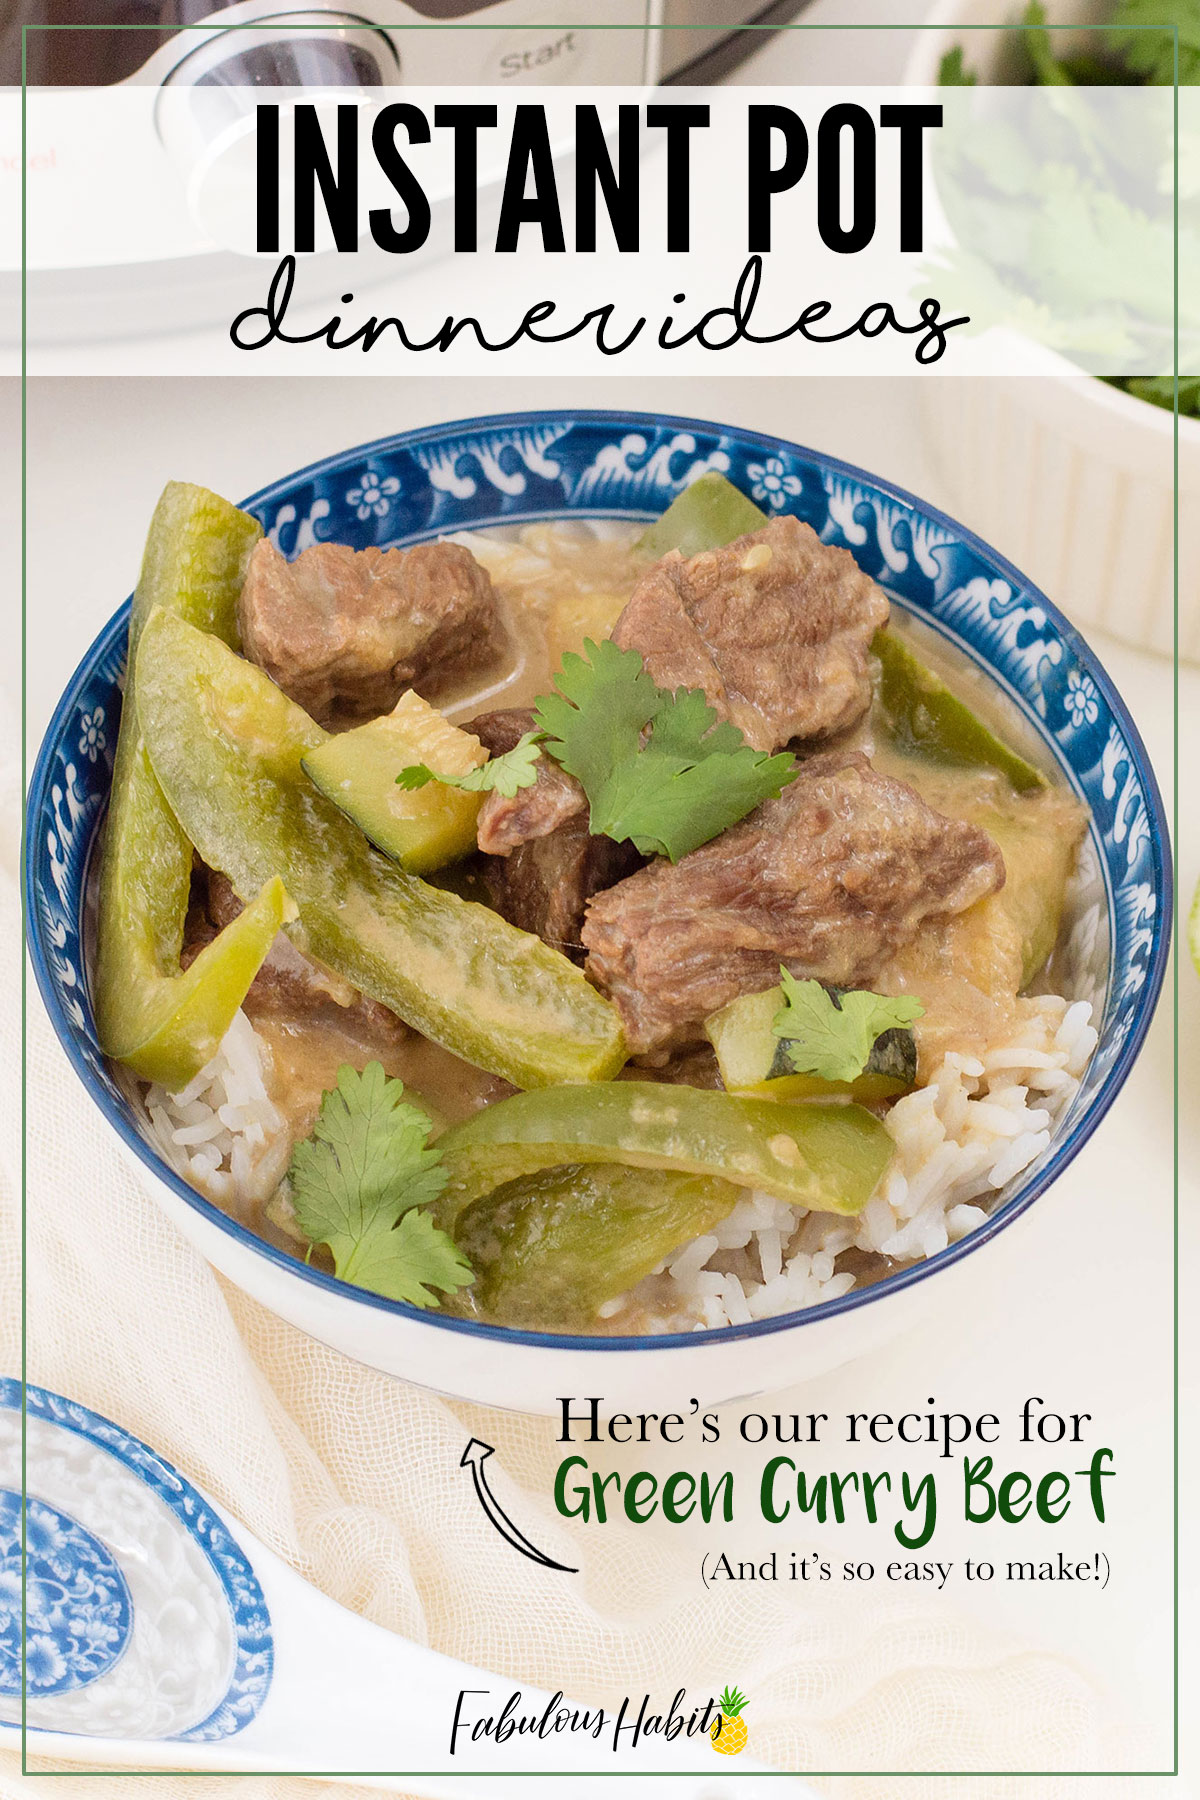 Looking for a new meal for your fam to try out? Our Instant Pot Green Curry Beef recipe is delicious and so easy to put together! #instantpotrecipes